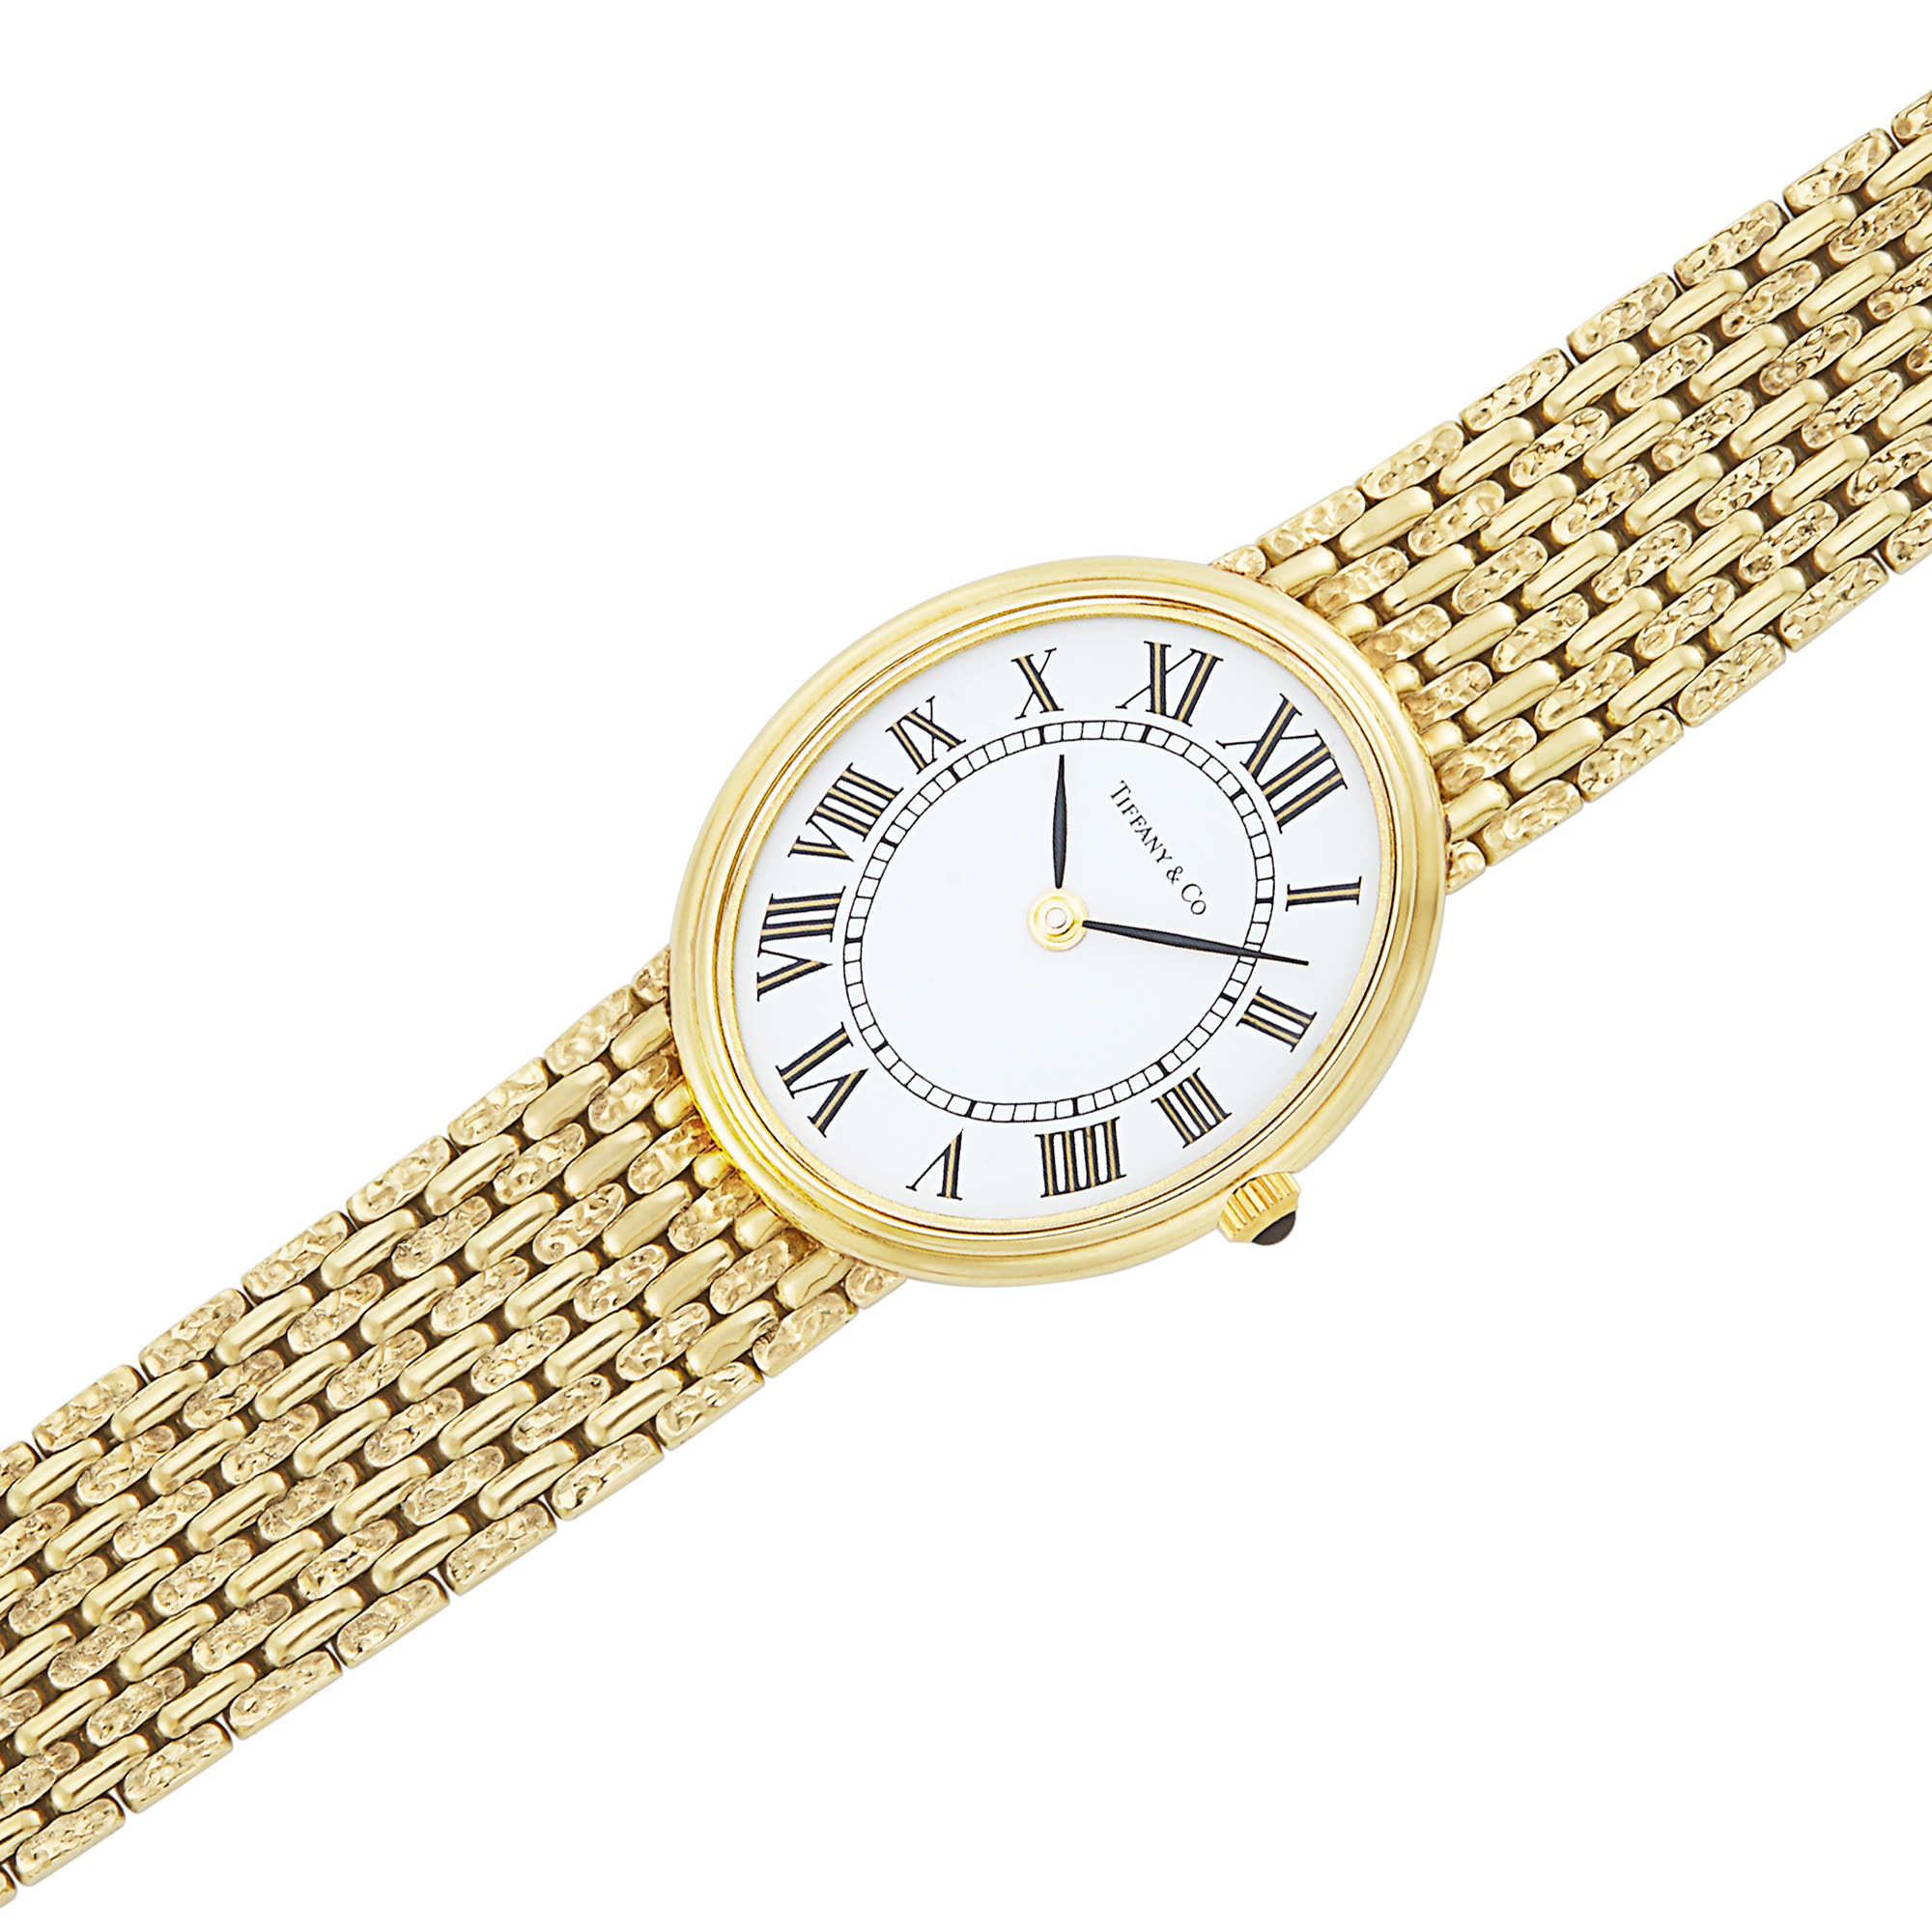 Lot image - Gold Wristwatch, Tiffany & Co.